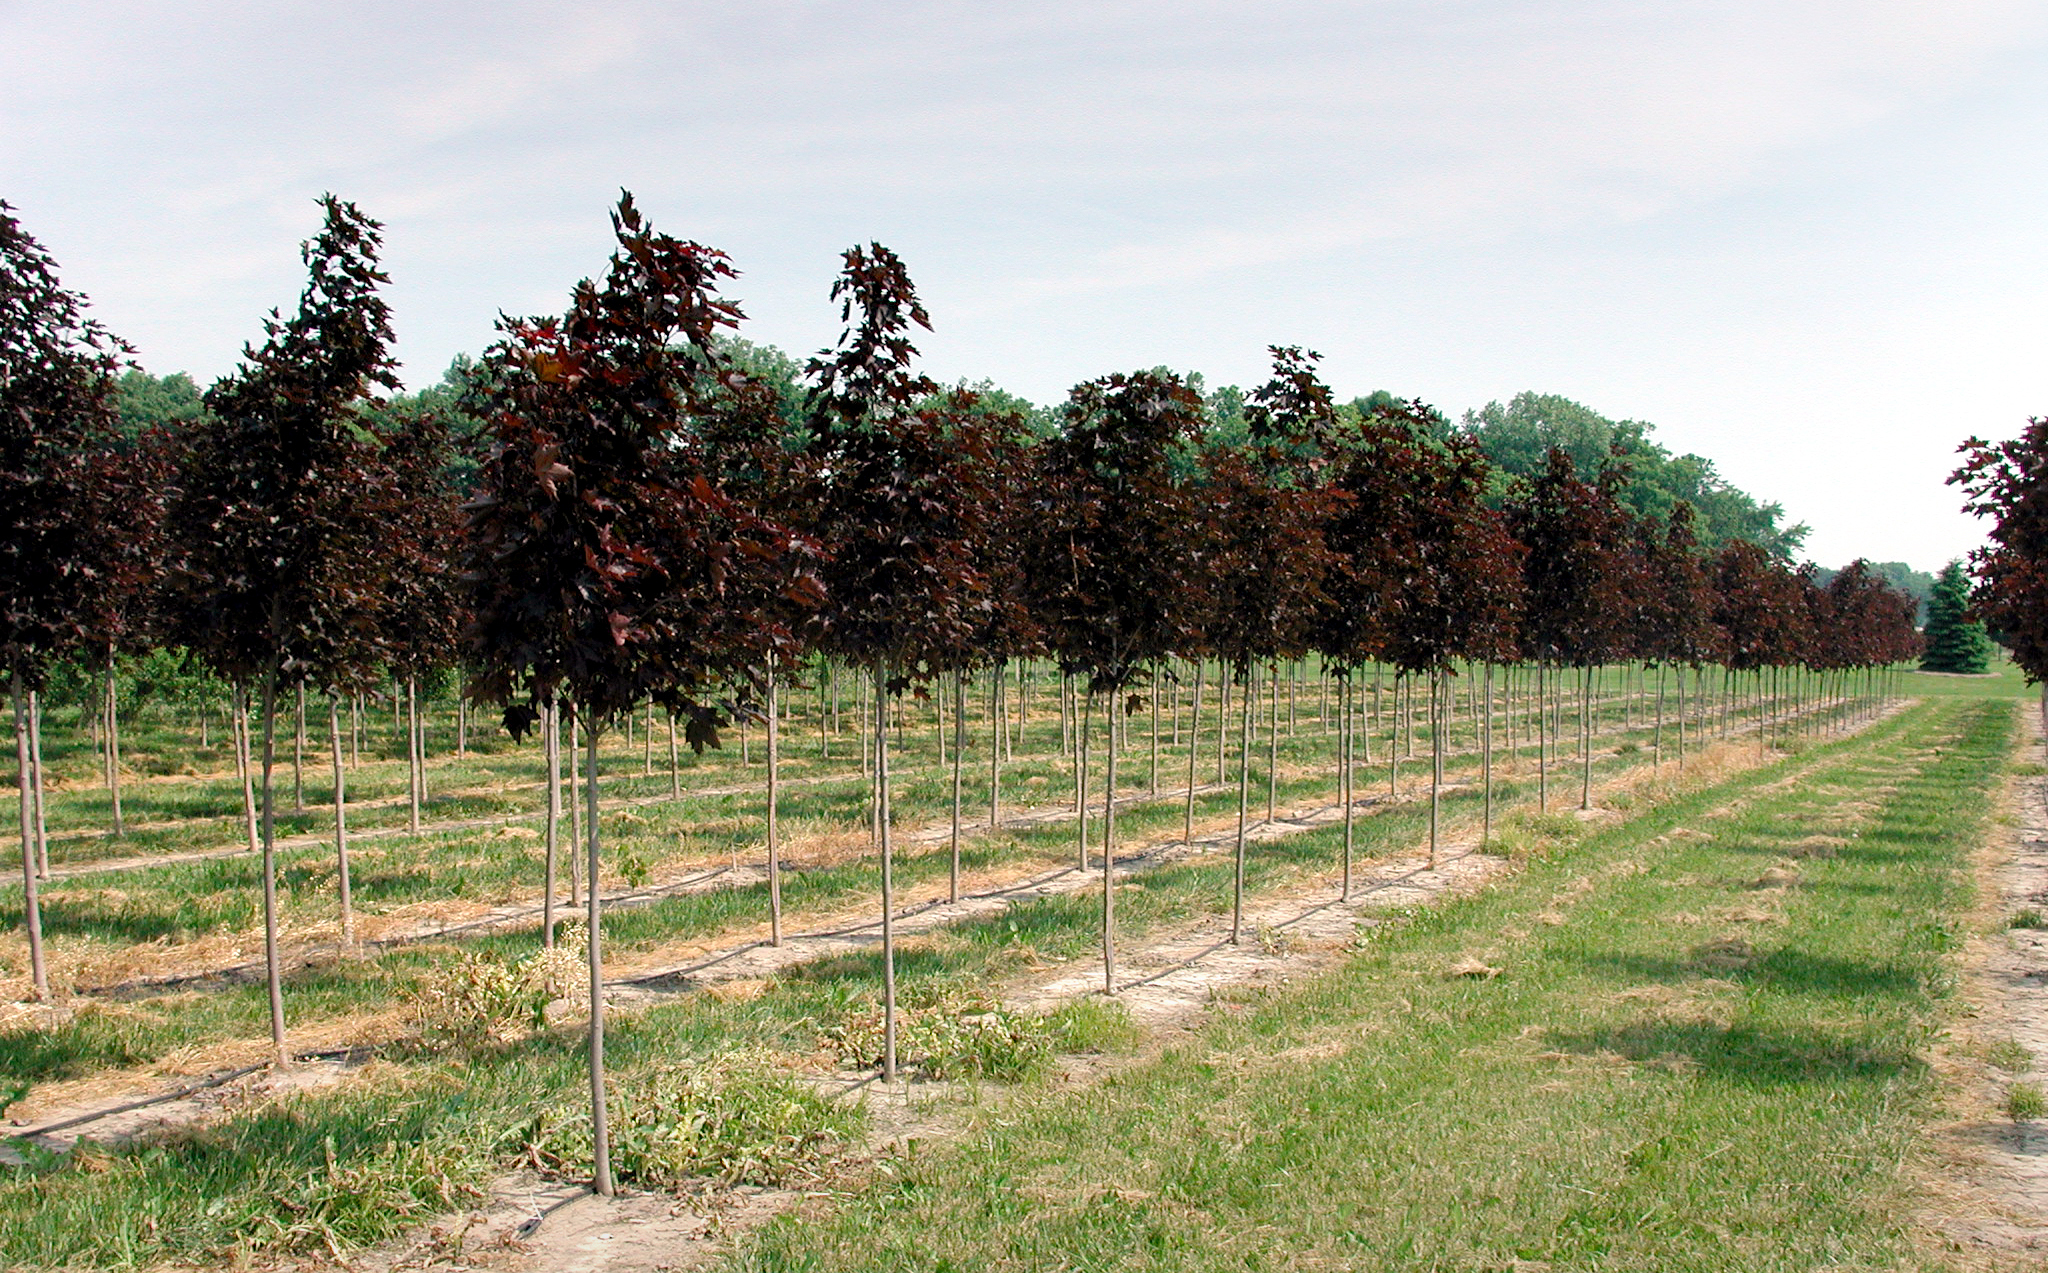 Most Of Our Varieties Shade And Ornamental Trees Evergreens Shrubs Are Available B Balled Burlaped Or In Containers